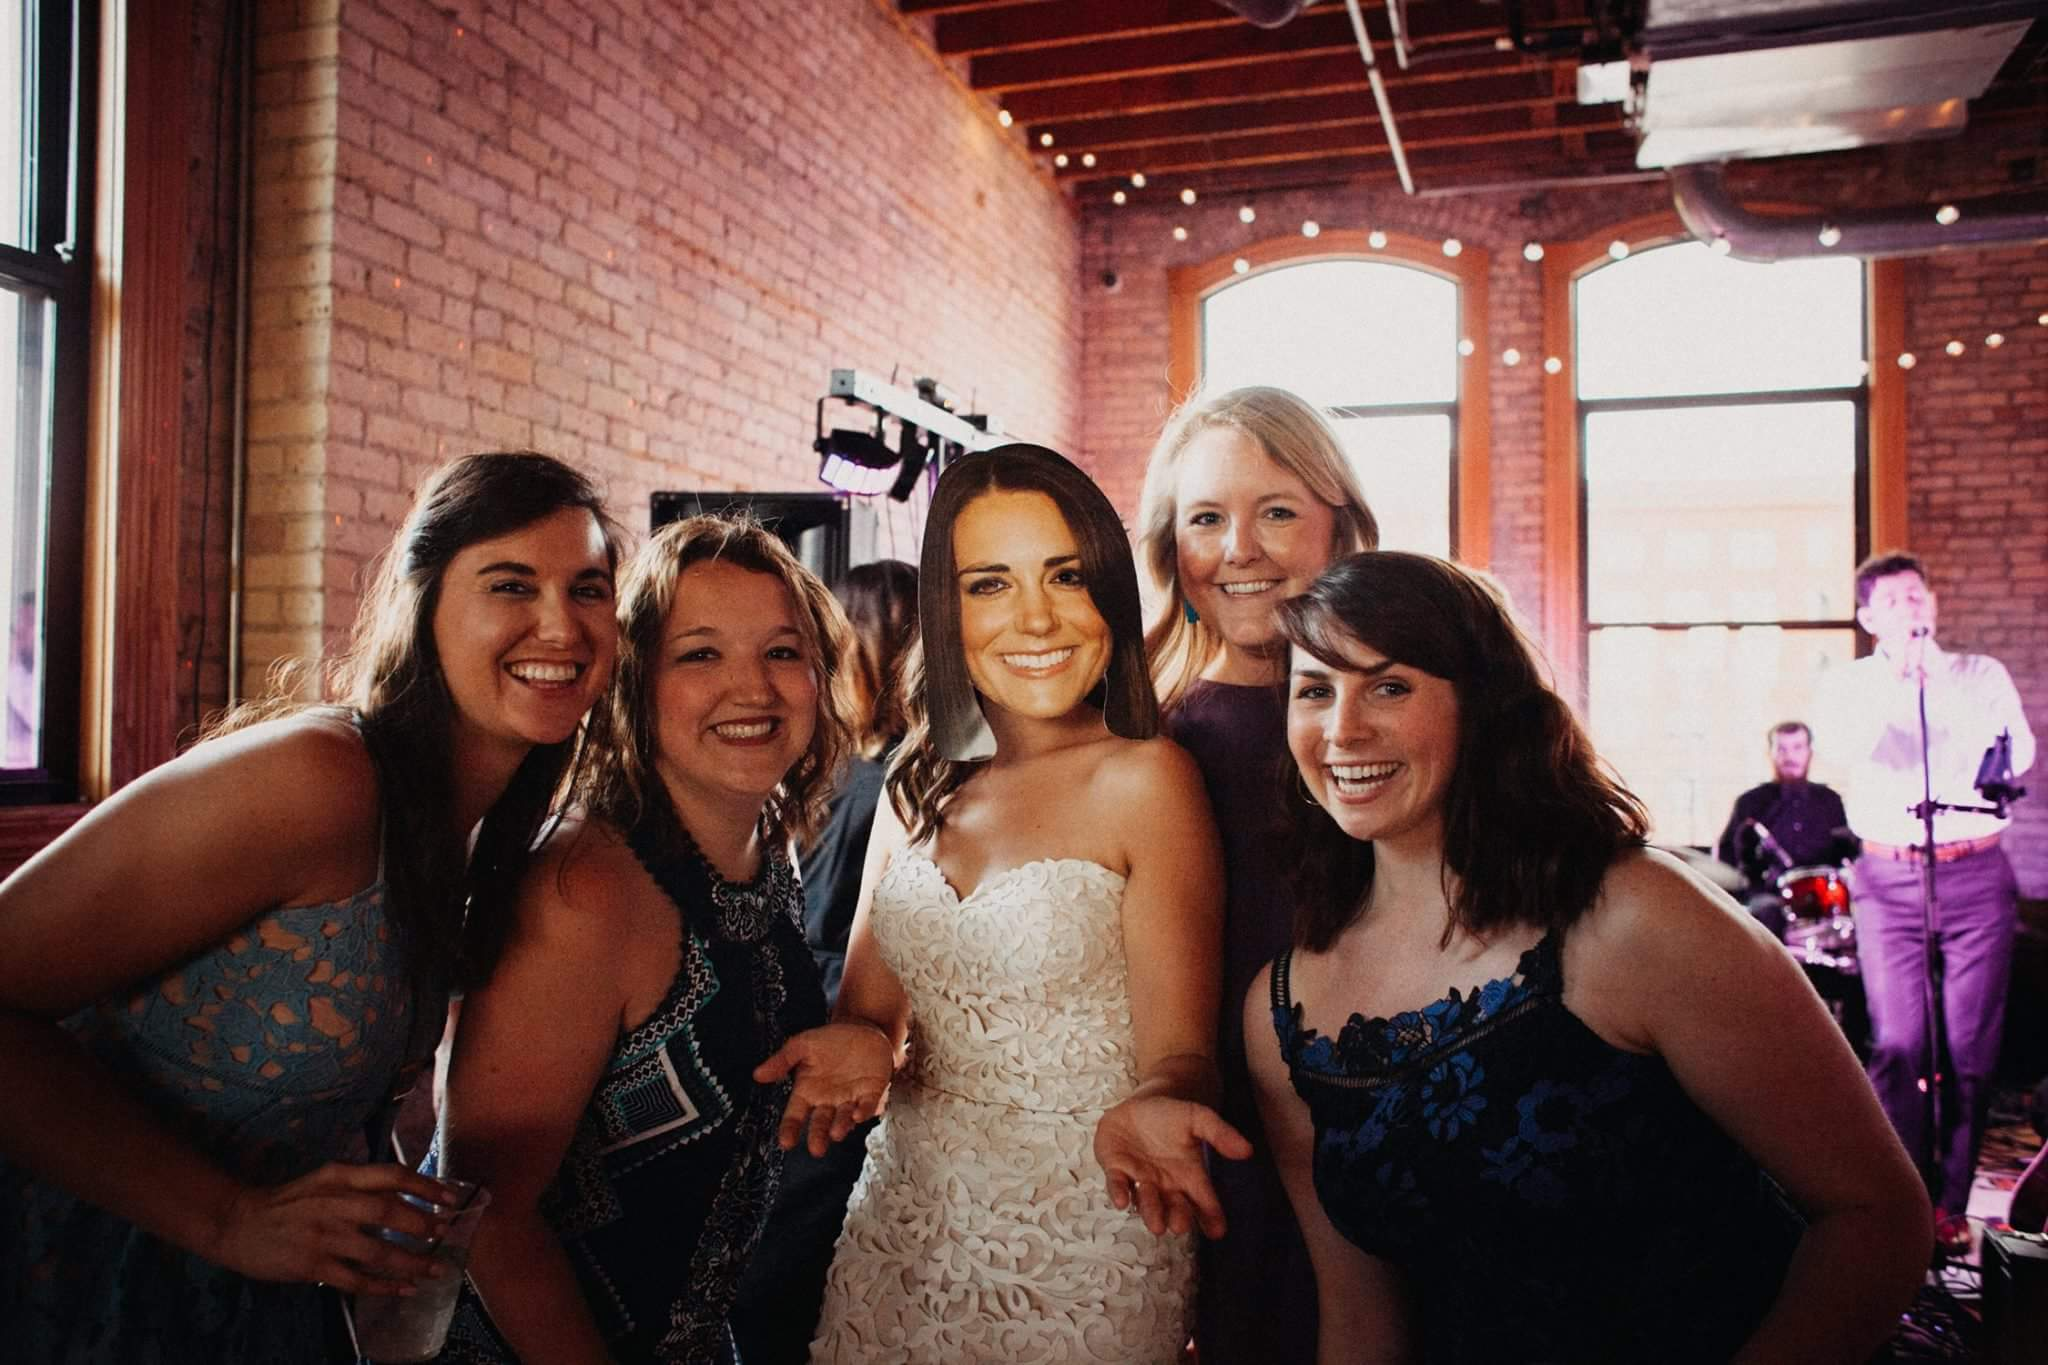 Flat 11- and Kate Middleton! Meggie brought the mask to my wedding and it was a hit!Now it's a tradition that Kate makes an appearance on the dance floor at every Flat 11 wedding! We have another one in 2018!